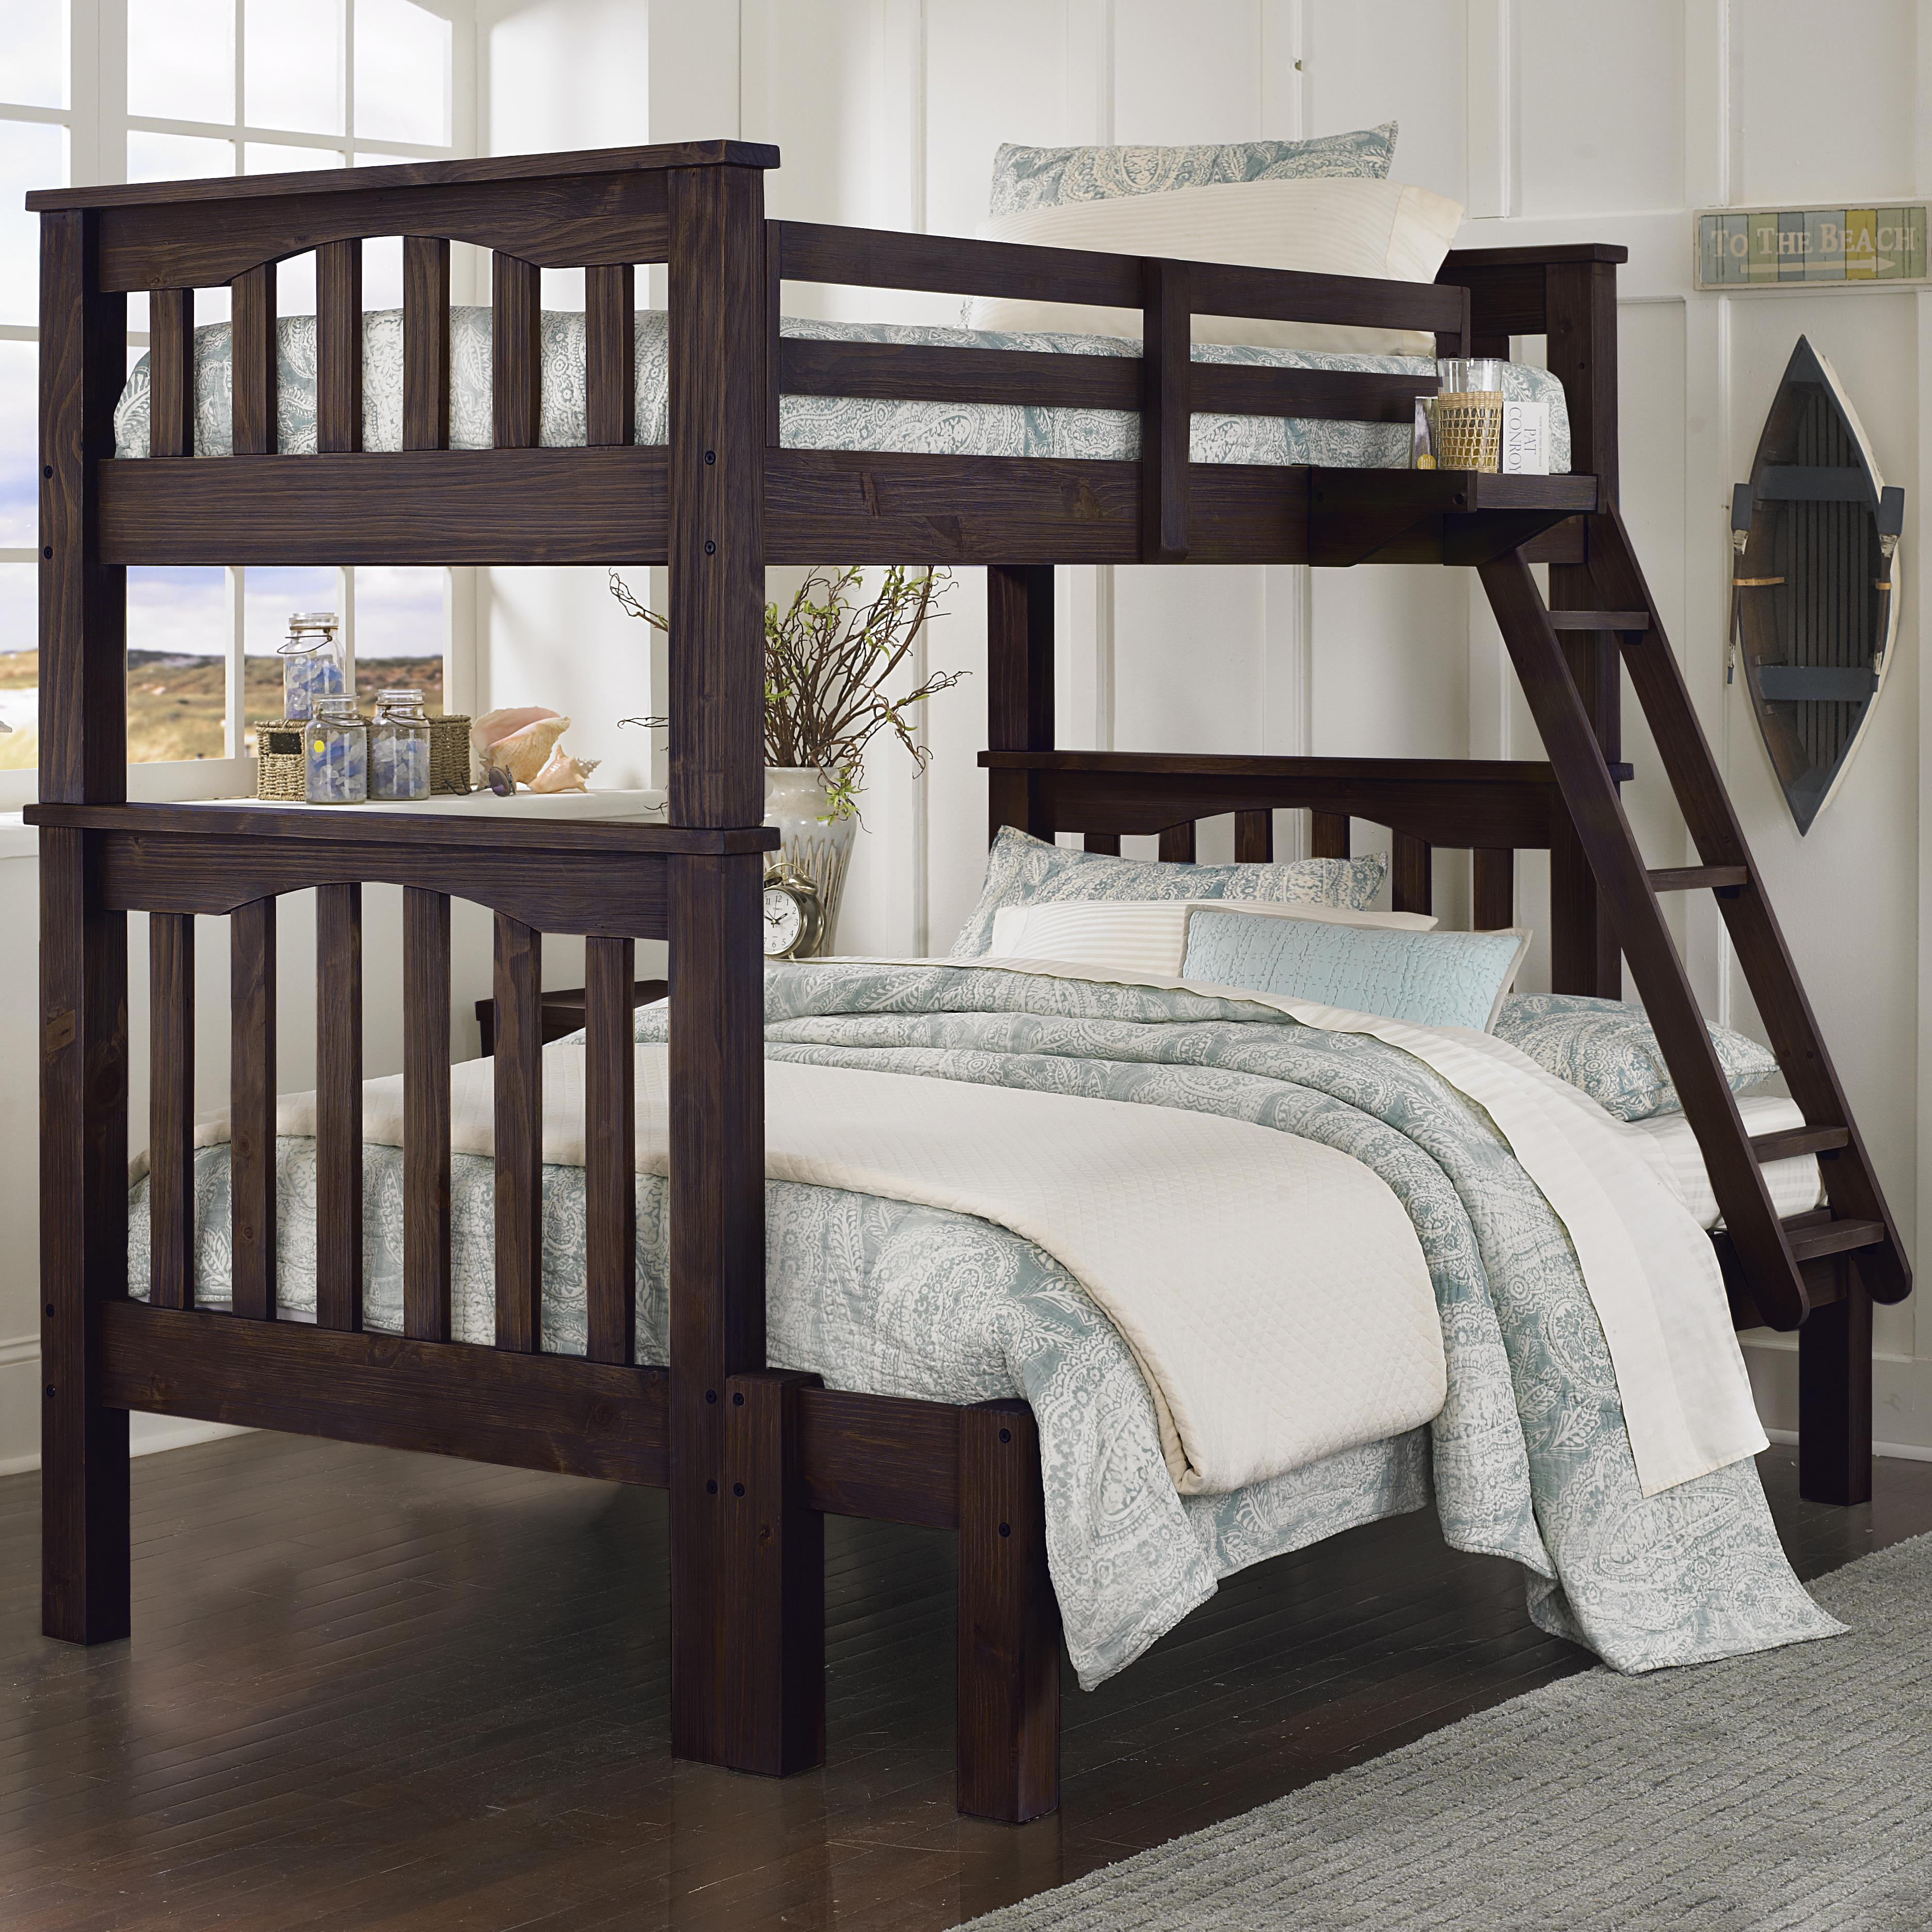 Highlands Twin Over Full Bunk Bed by NE Kids at Stoney Creek Furniture